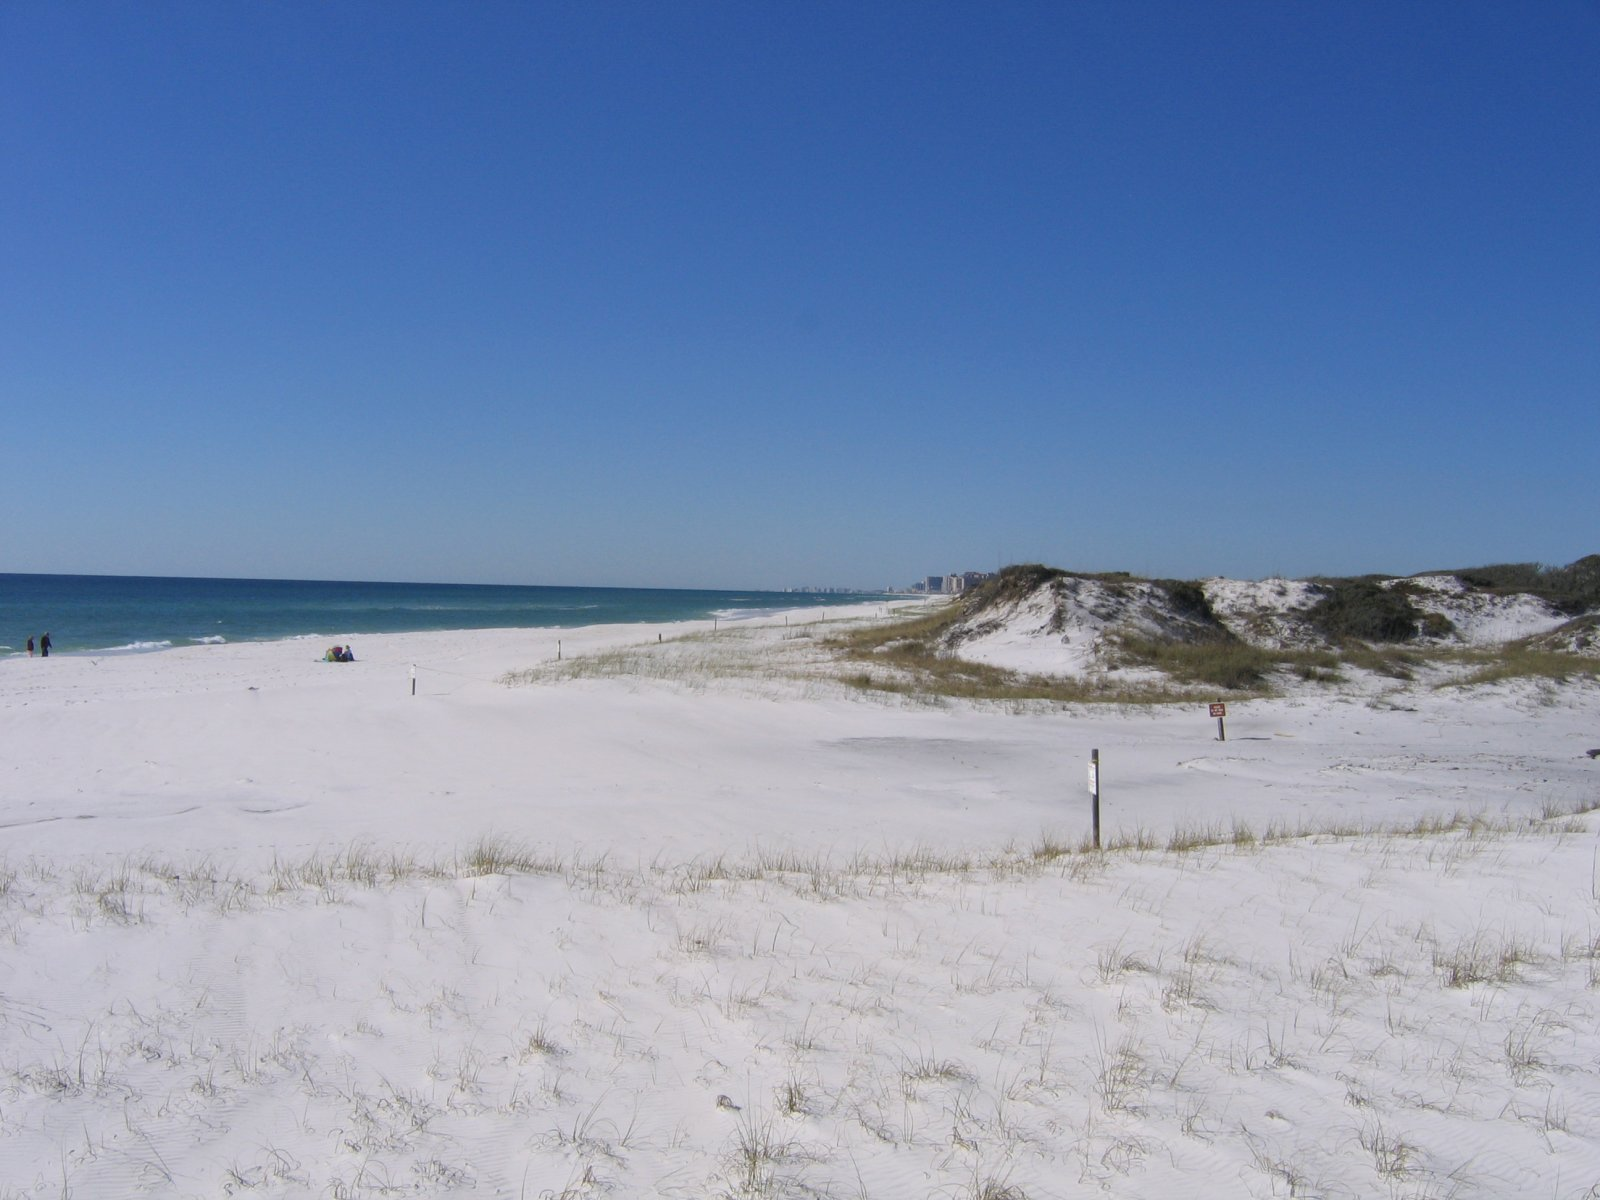 Click image for larger version  Name:Beach 2.jpg Views:61 Size:205.8 KB ID:254060